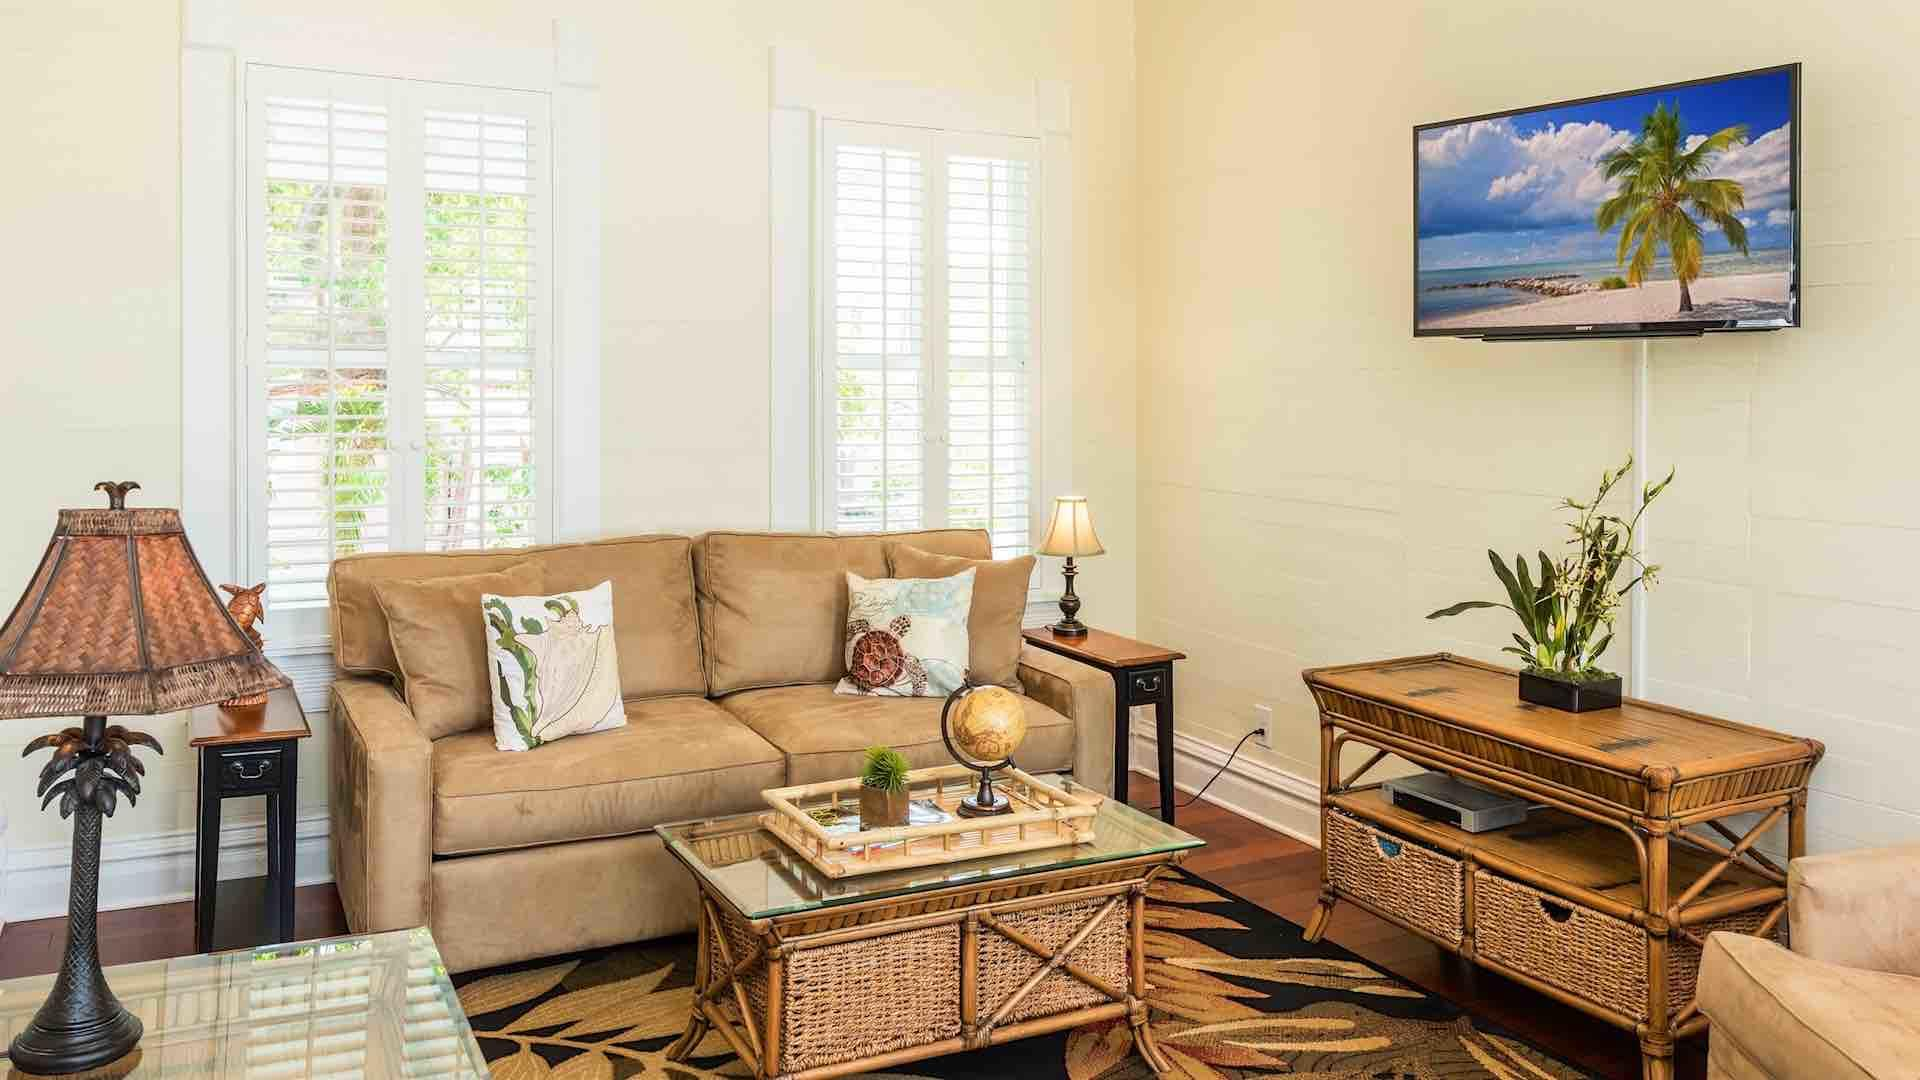 The living room of Villa Angelita has a flat screen TV and comfortable seating options...